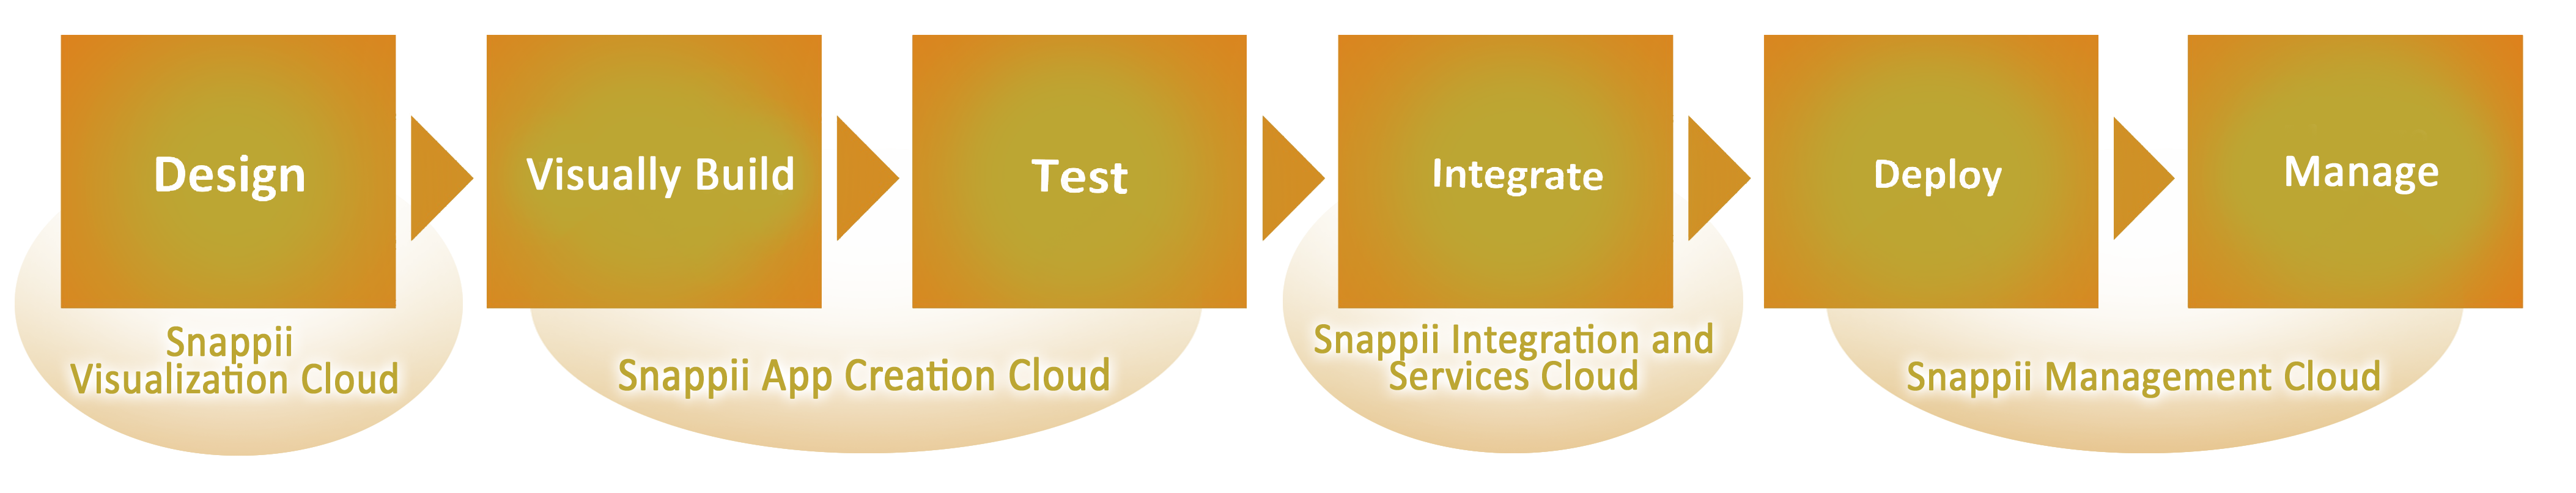 Snappii Development Process